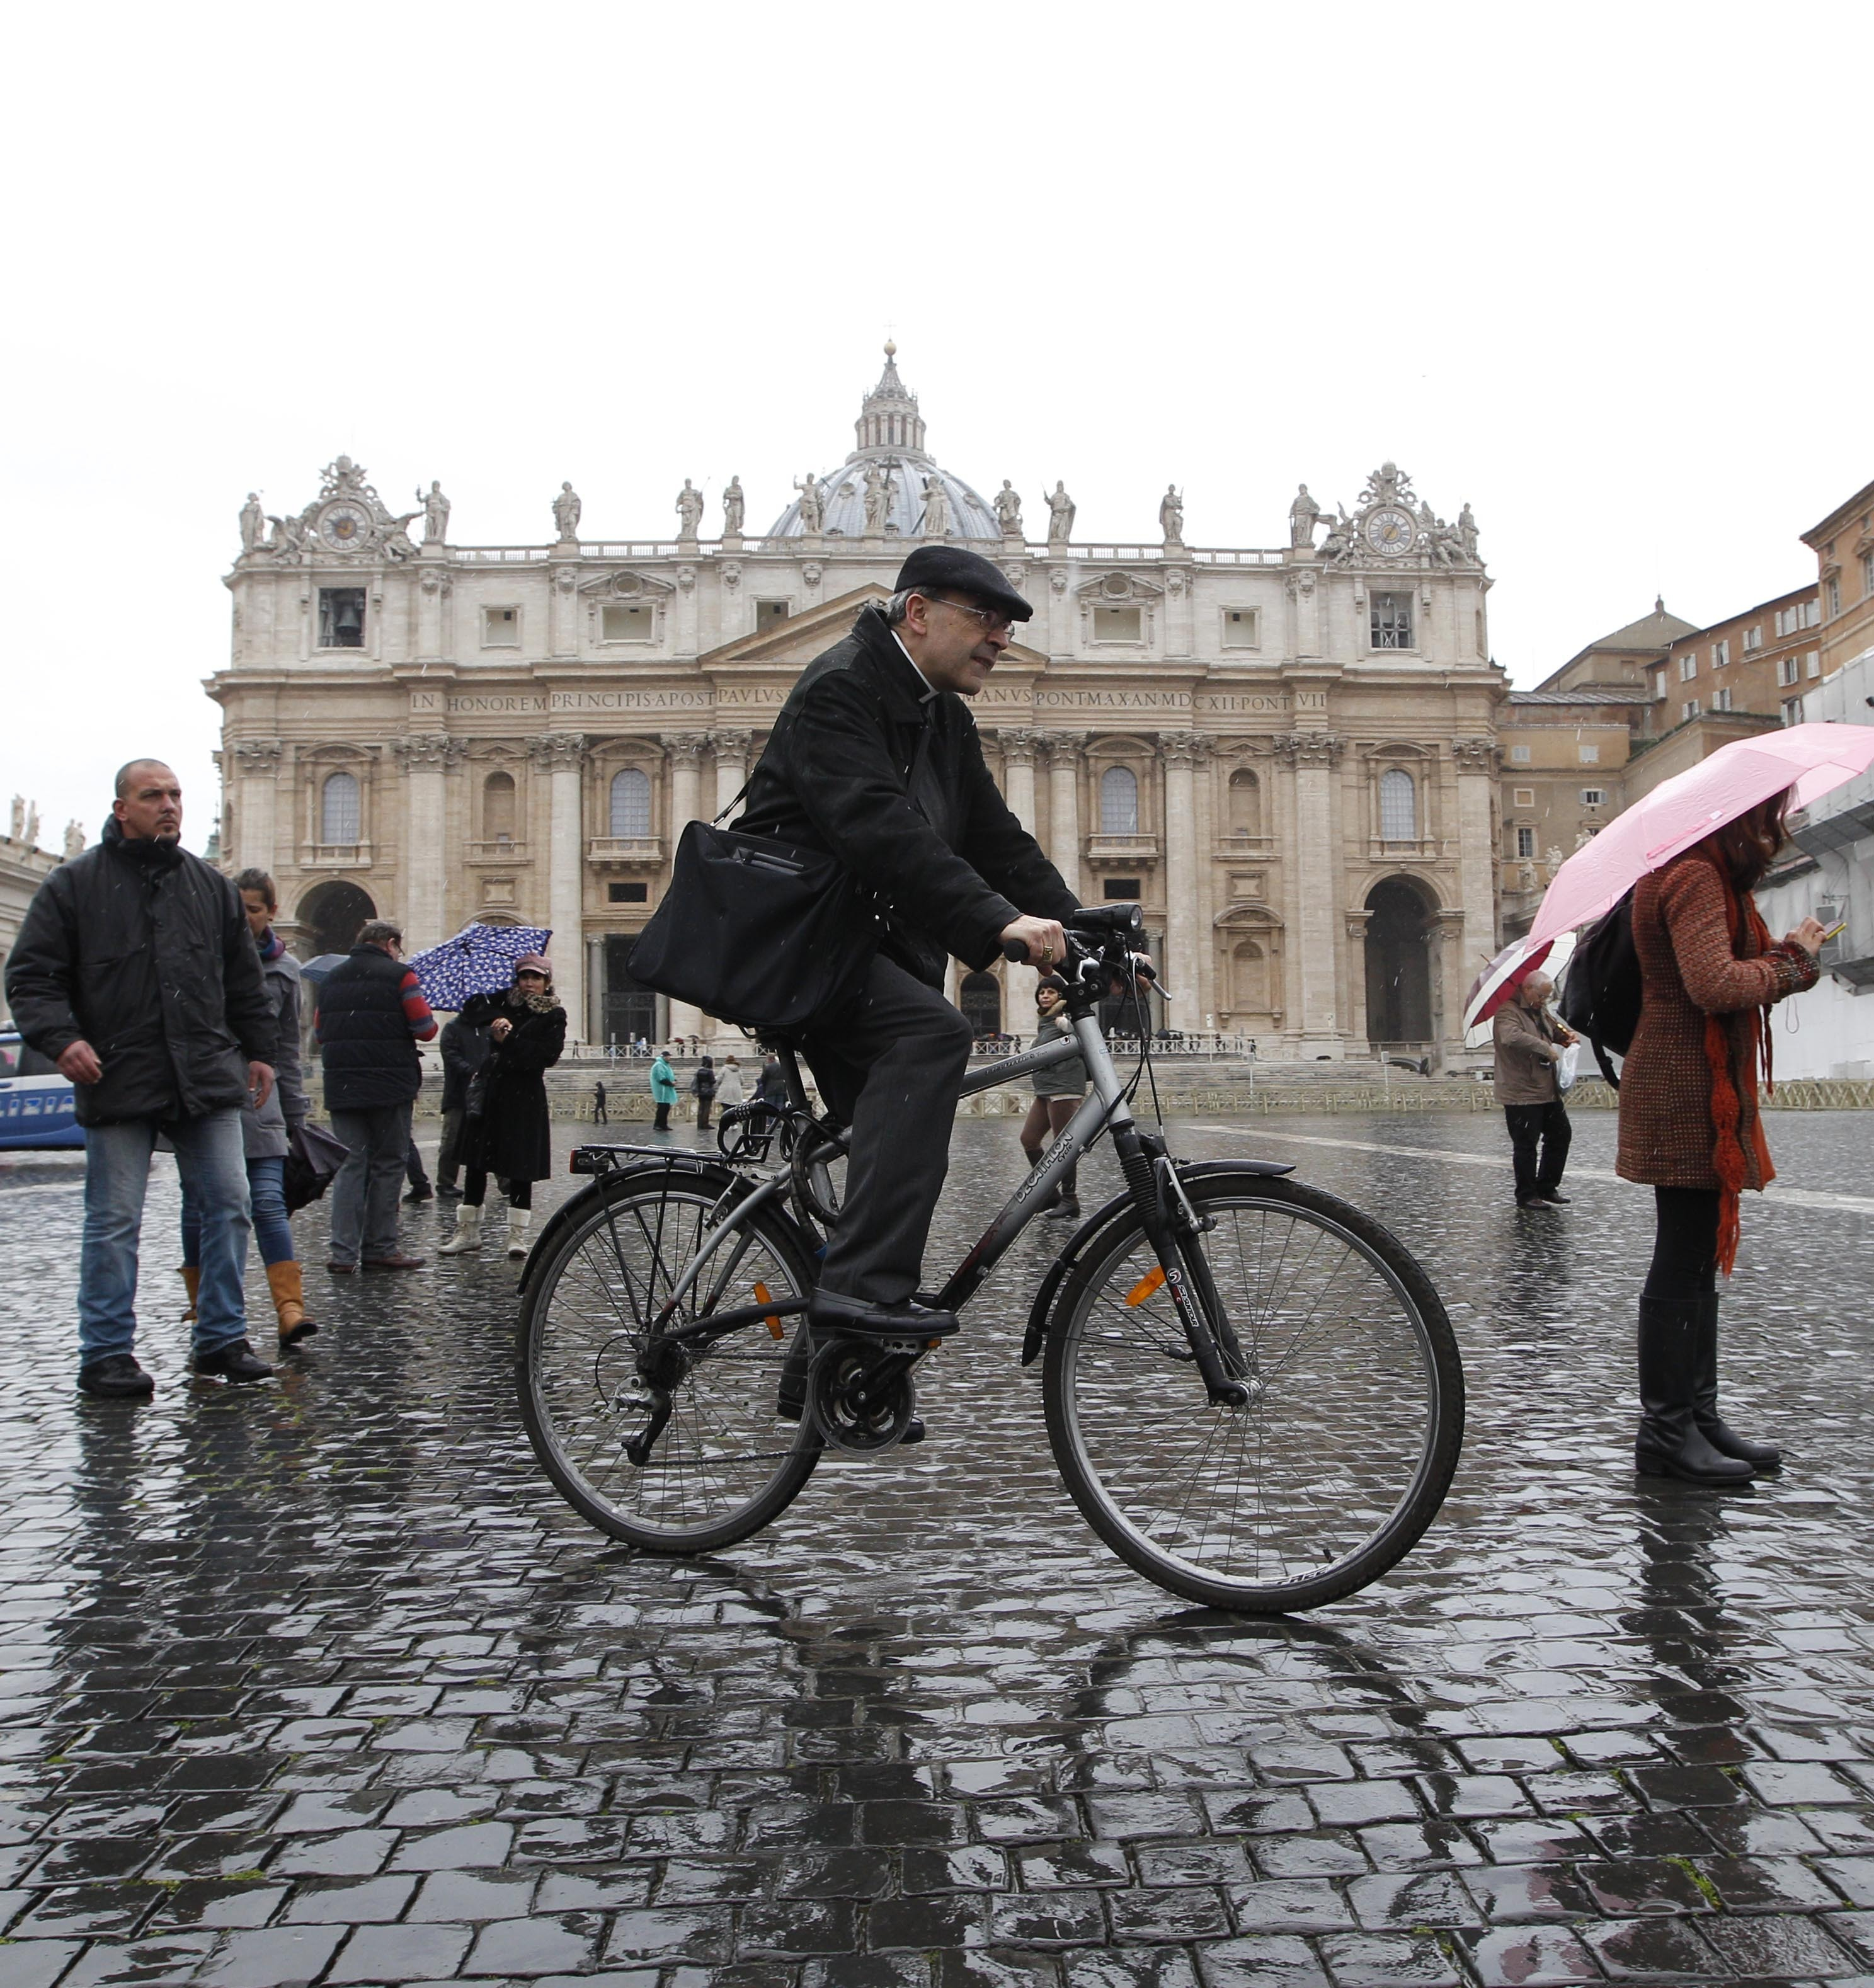 FILE - In this Friday, March 8, 2013 file photo, French Cardinal Philippe Barbarin rides his bicycle in St. Peter's Square after a meeting at the Vatican.  A French court has found top Catholic official Cardinal Philippe Barbarin guilty for failing to report to justice accusations against a pedophile priest. In a surprise decision Thursday, March 7, 2019 in France's most important church sex abuse trial, the Lyon court handed Barbarin a six-month suspended prison sentence for not reporting the facts in the period between July 2014 and June 2015. (AP Photo/Alessandra Tarantino, File )